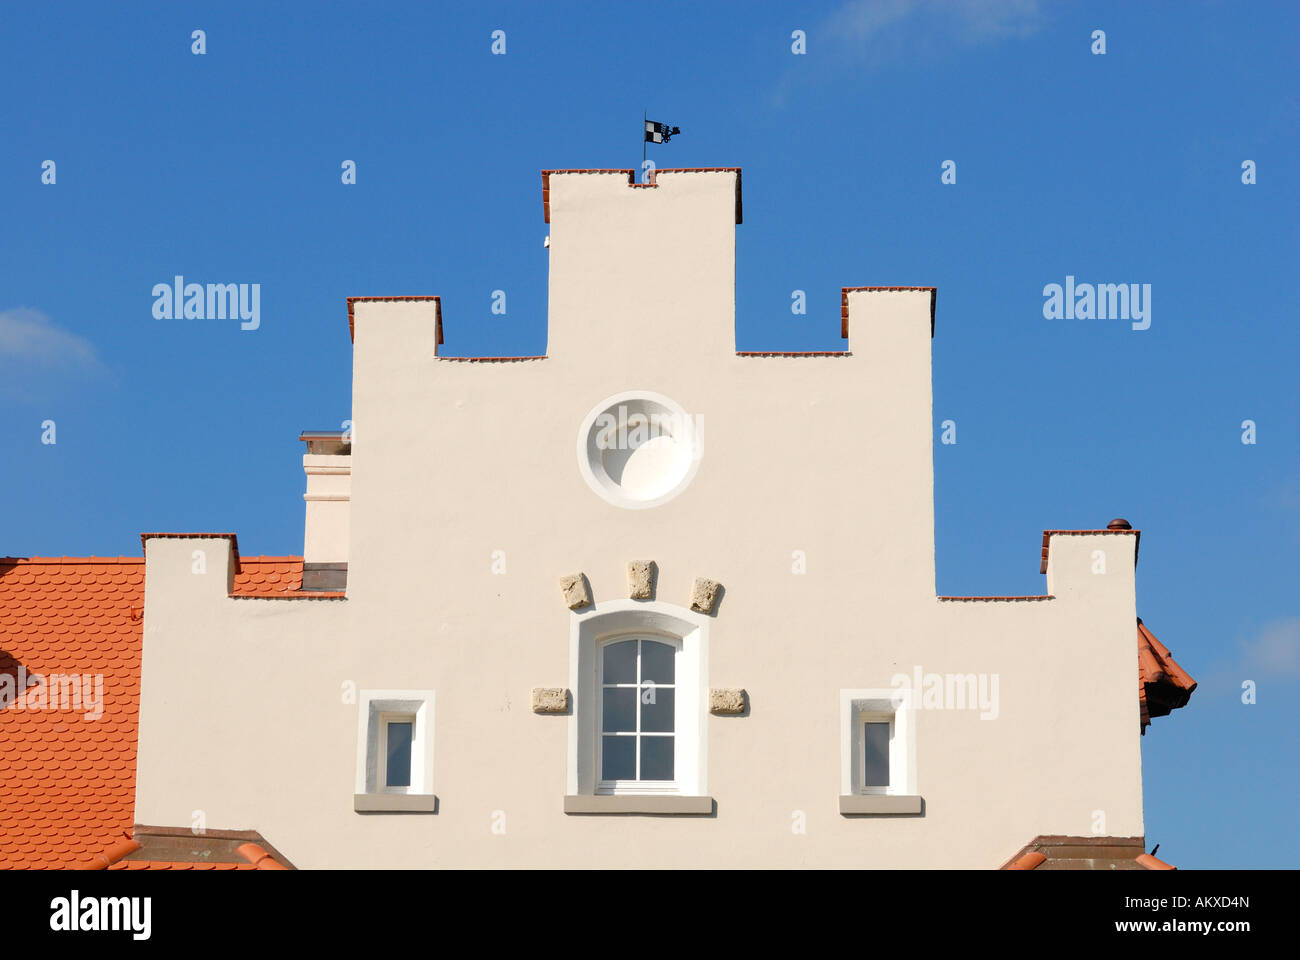 Sigmaringen - a detail view from the historical hydro electric power station - Baden-Wuerttemberg, Germany, Europe. - Stock Image